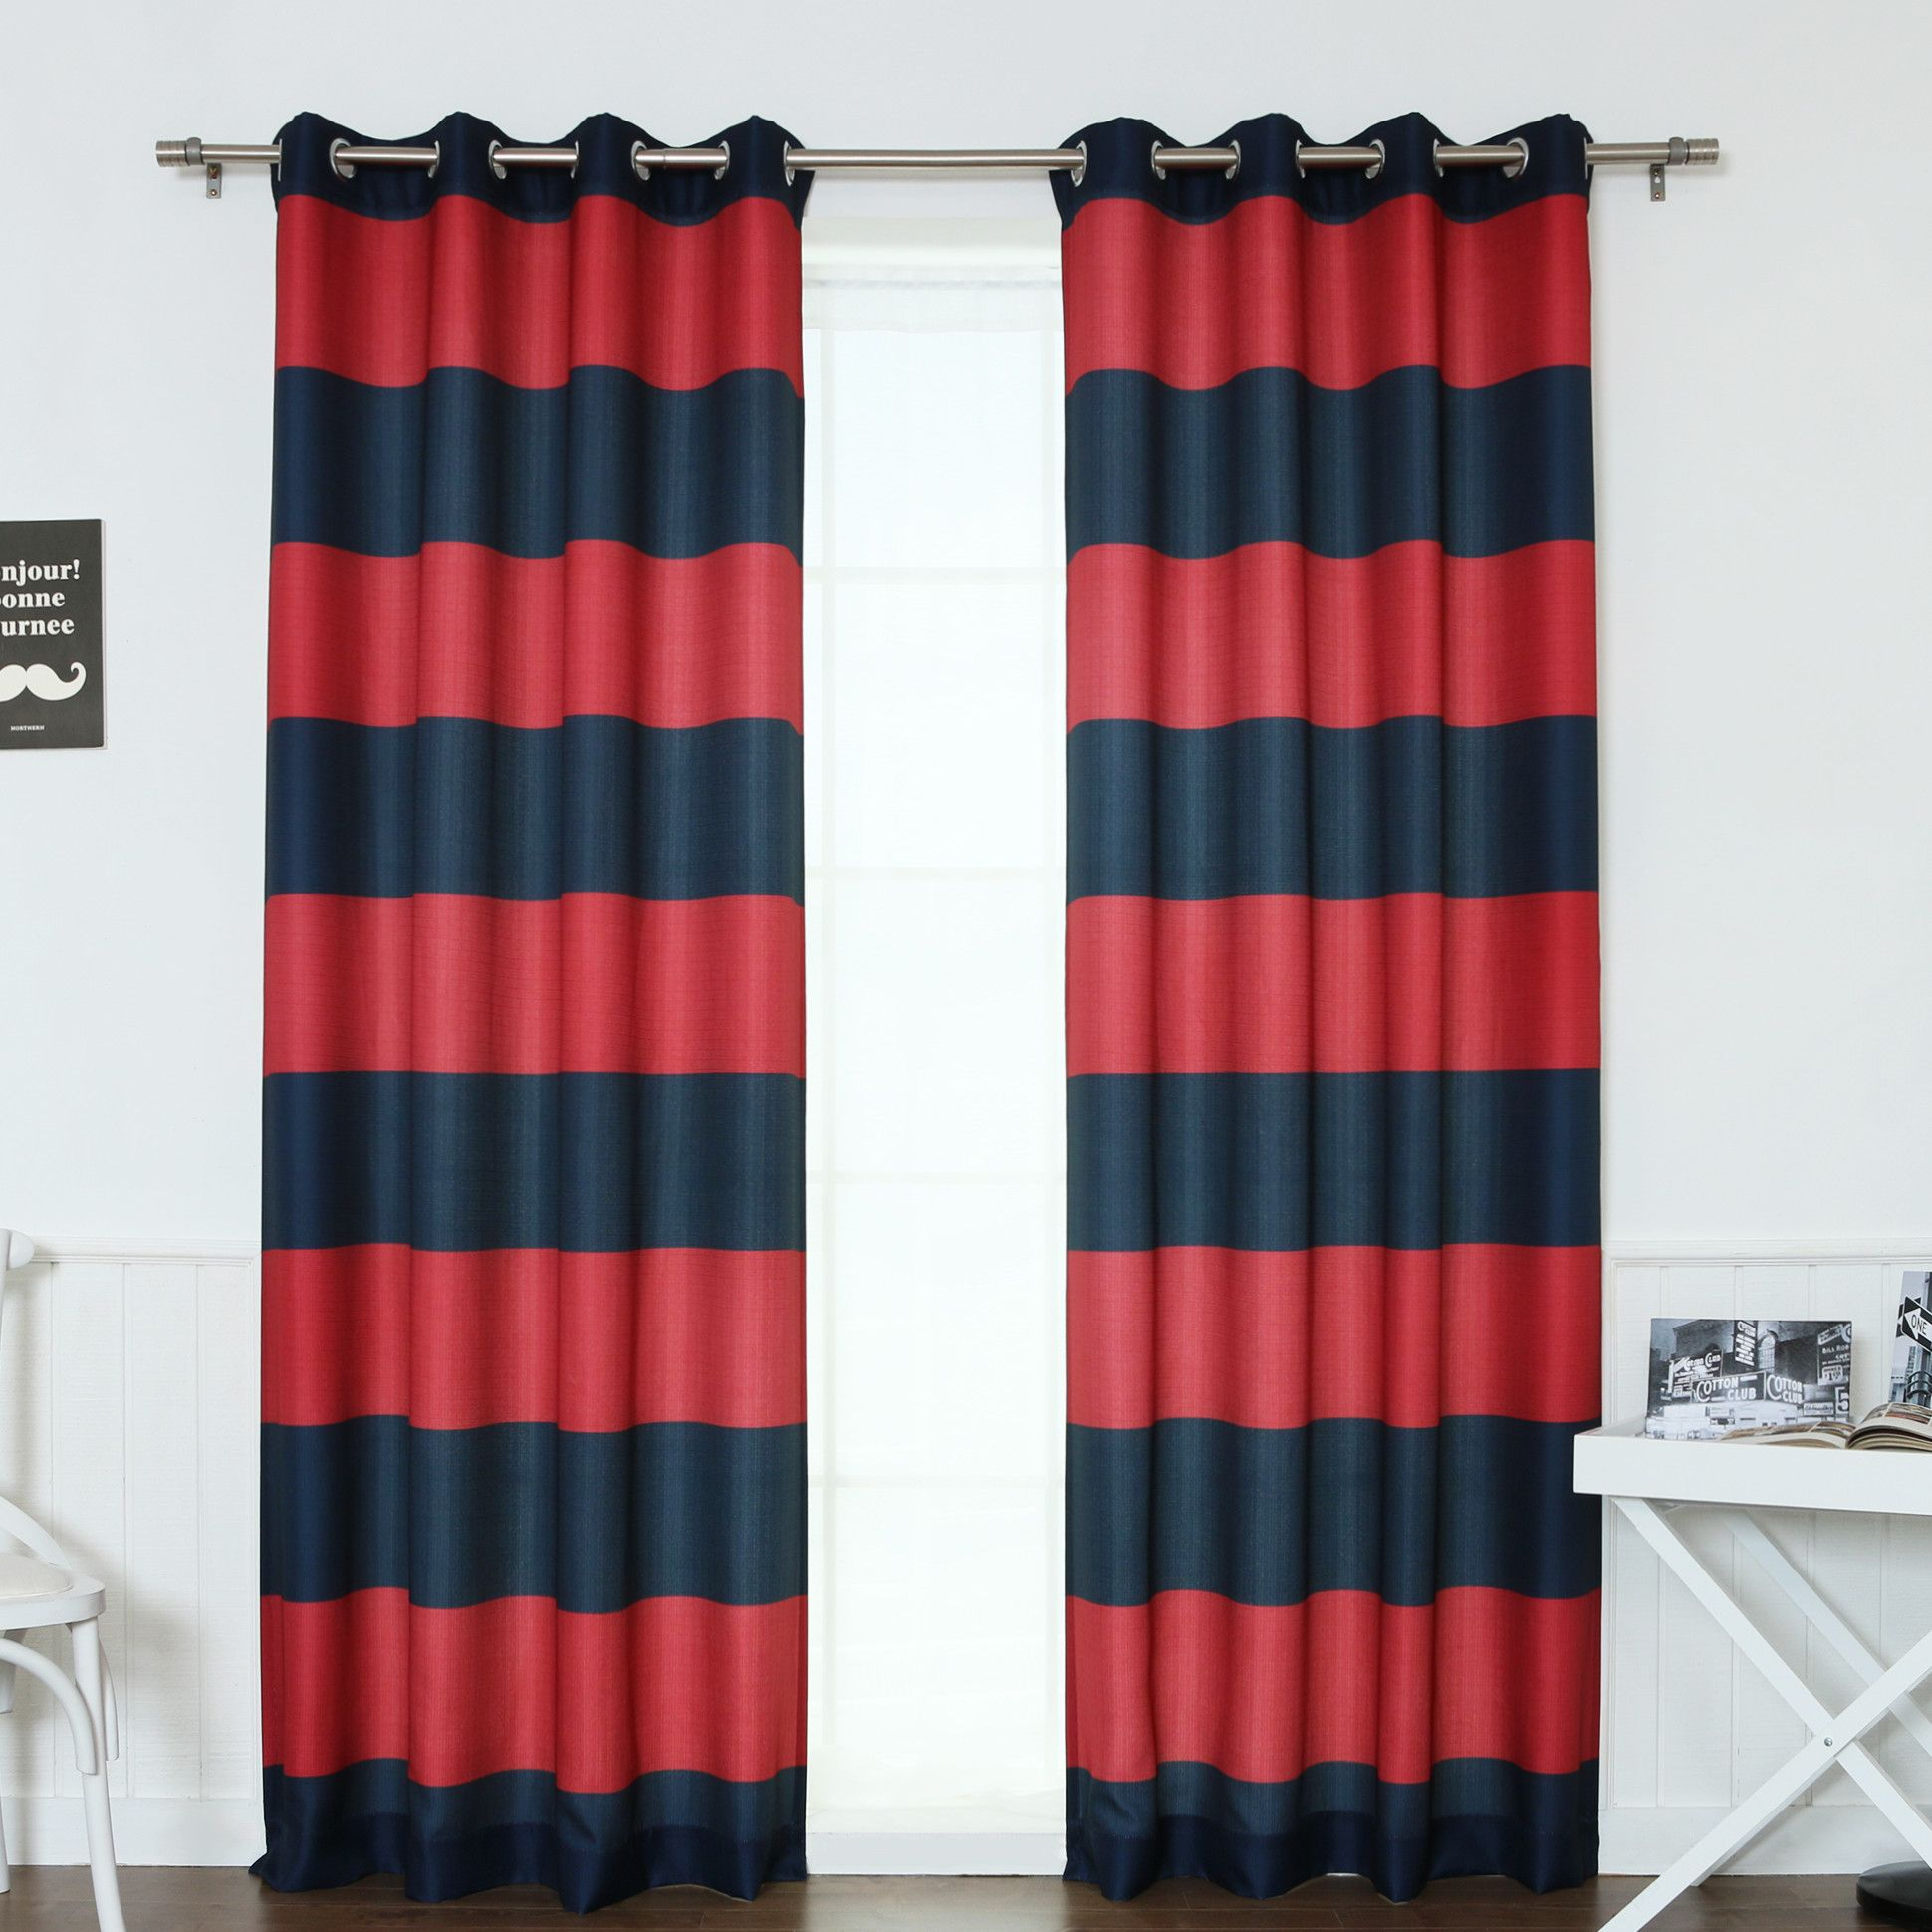 Rugby Stripe Curtain Panels Panel Curtains Striped Room House Styles